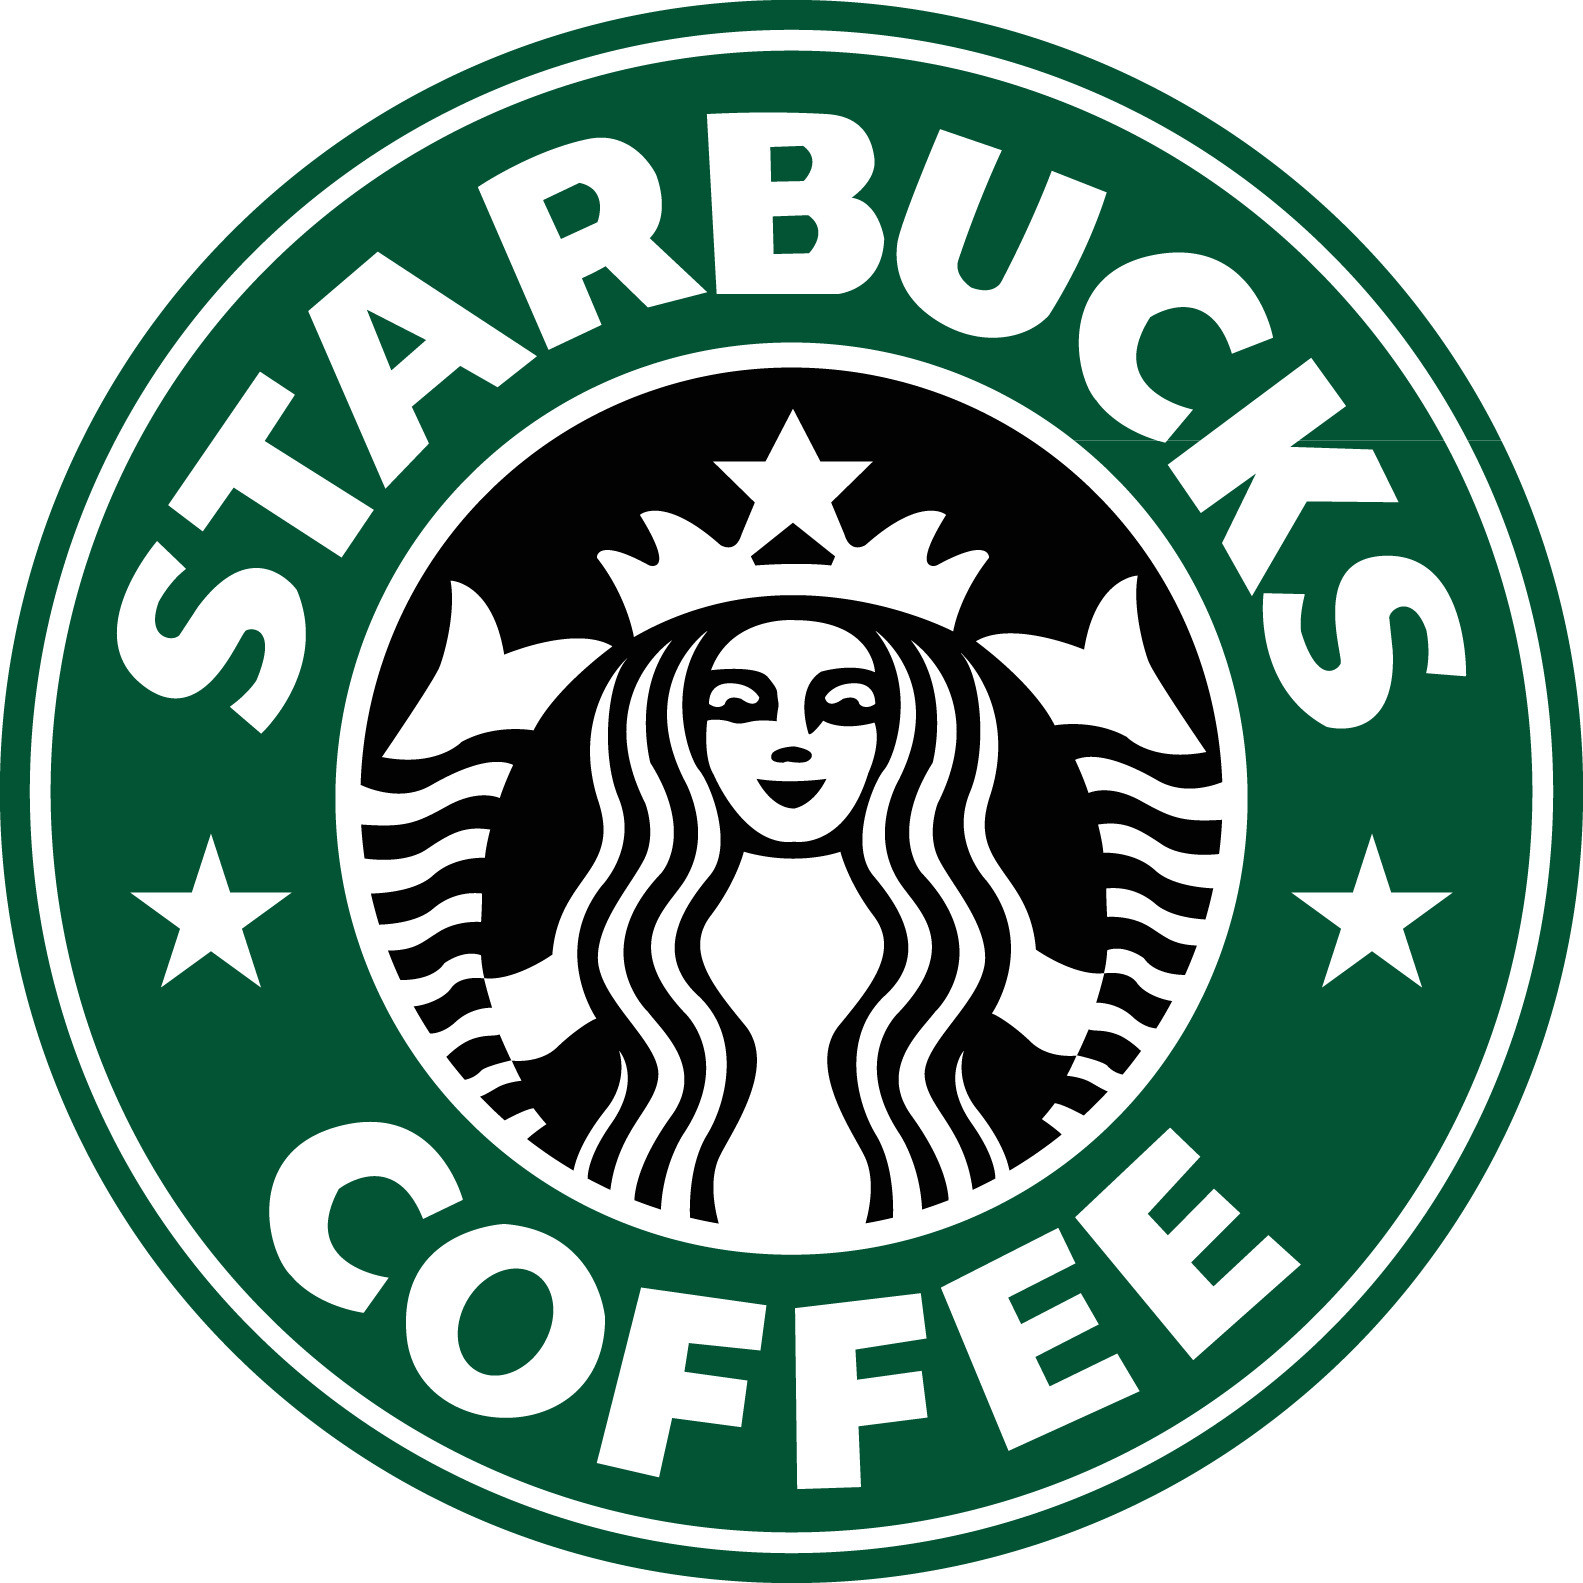 image starbucks logo jpg irc rp community wiki fandom powered rh irc rp community wikia com make your own starbucks logo app make your own starbucks logo app